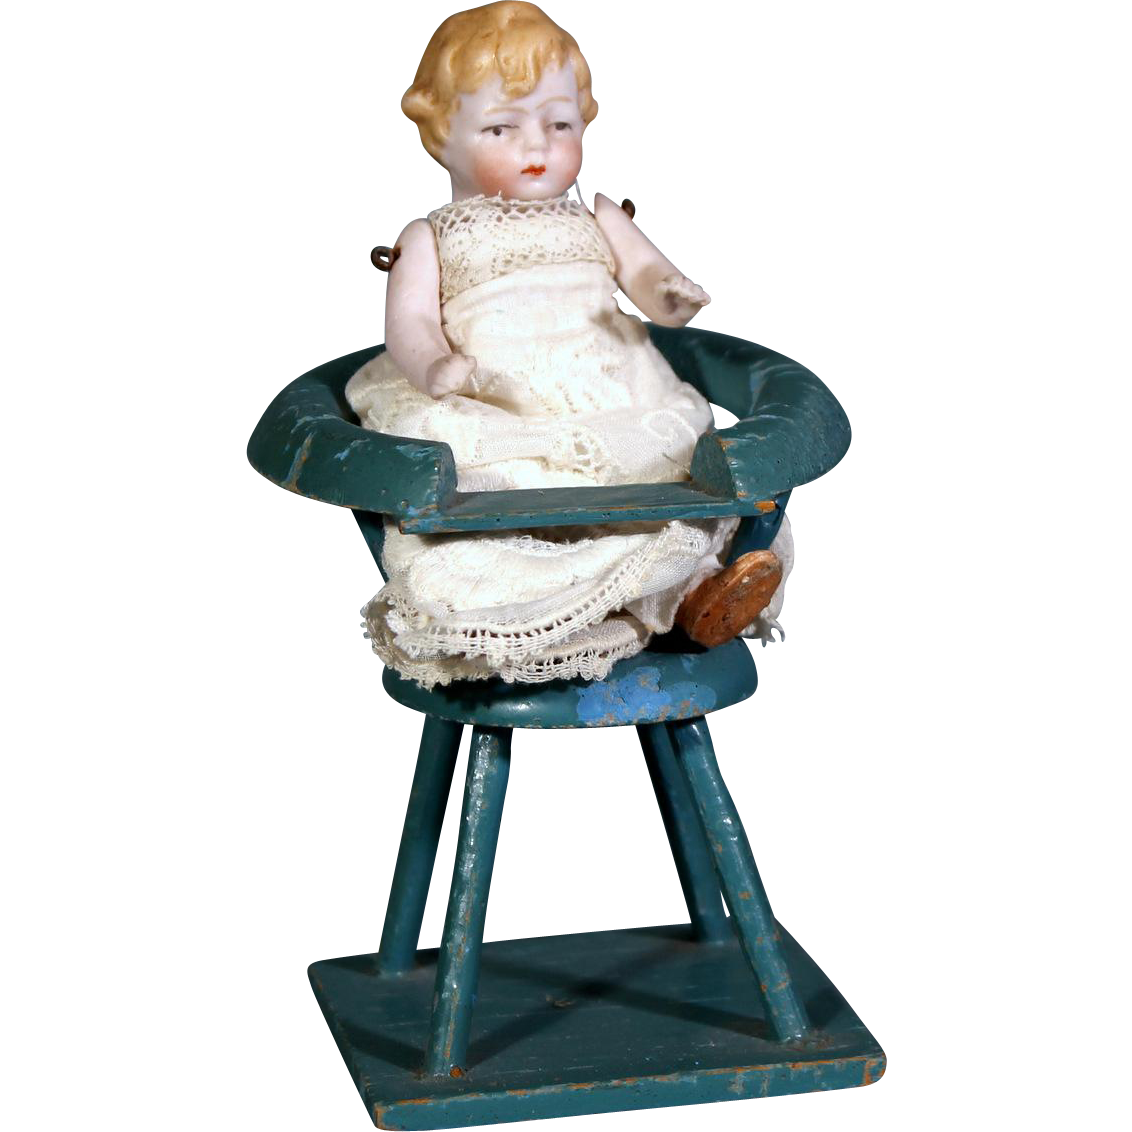 Hertwig All-Bisque in High Chair